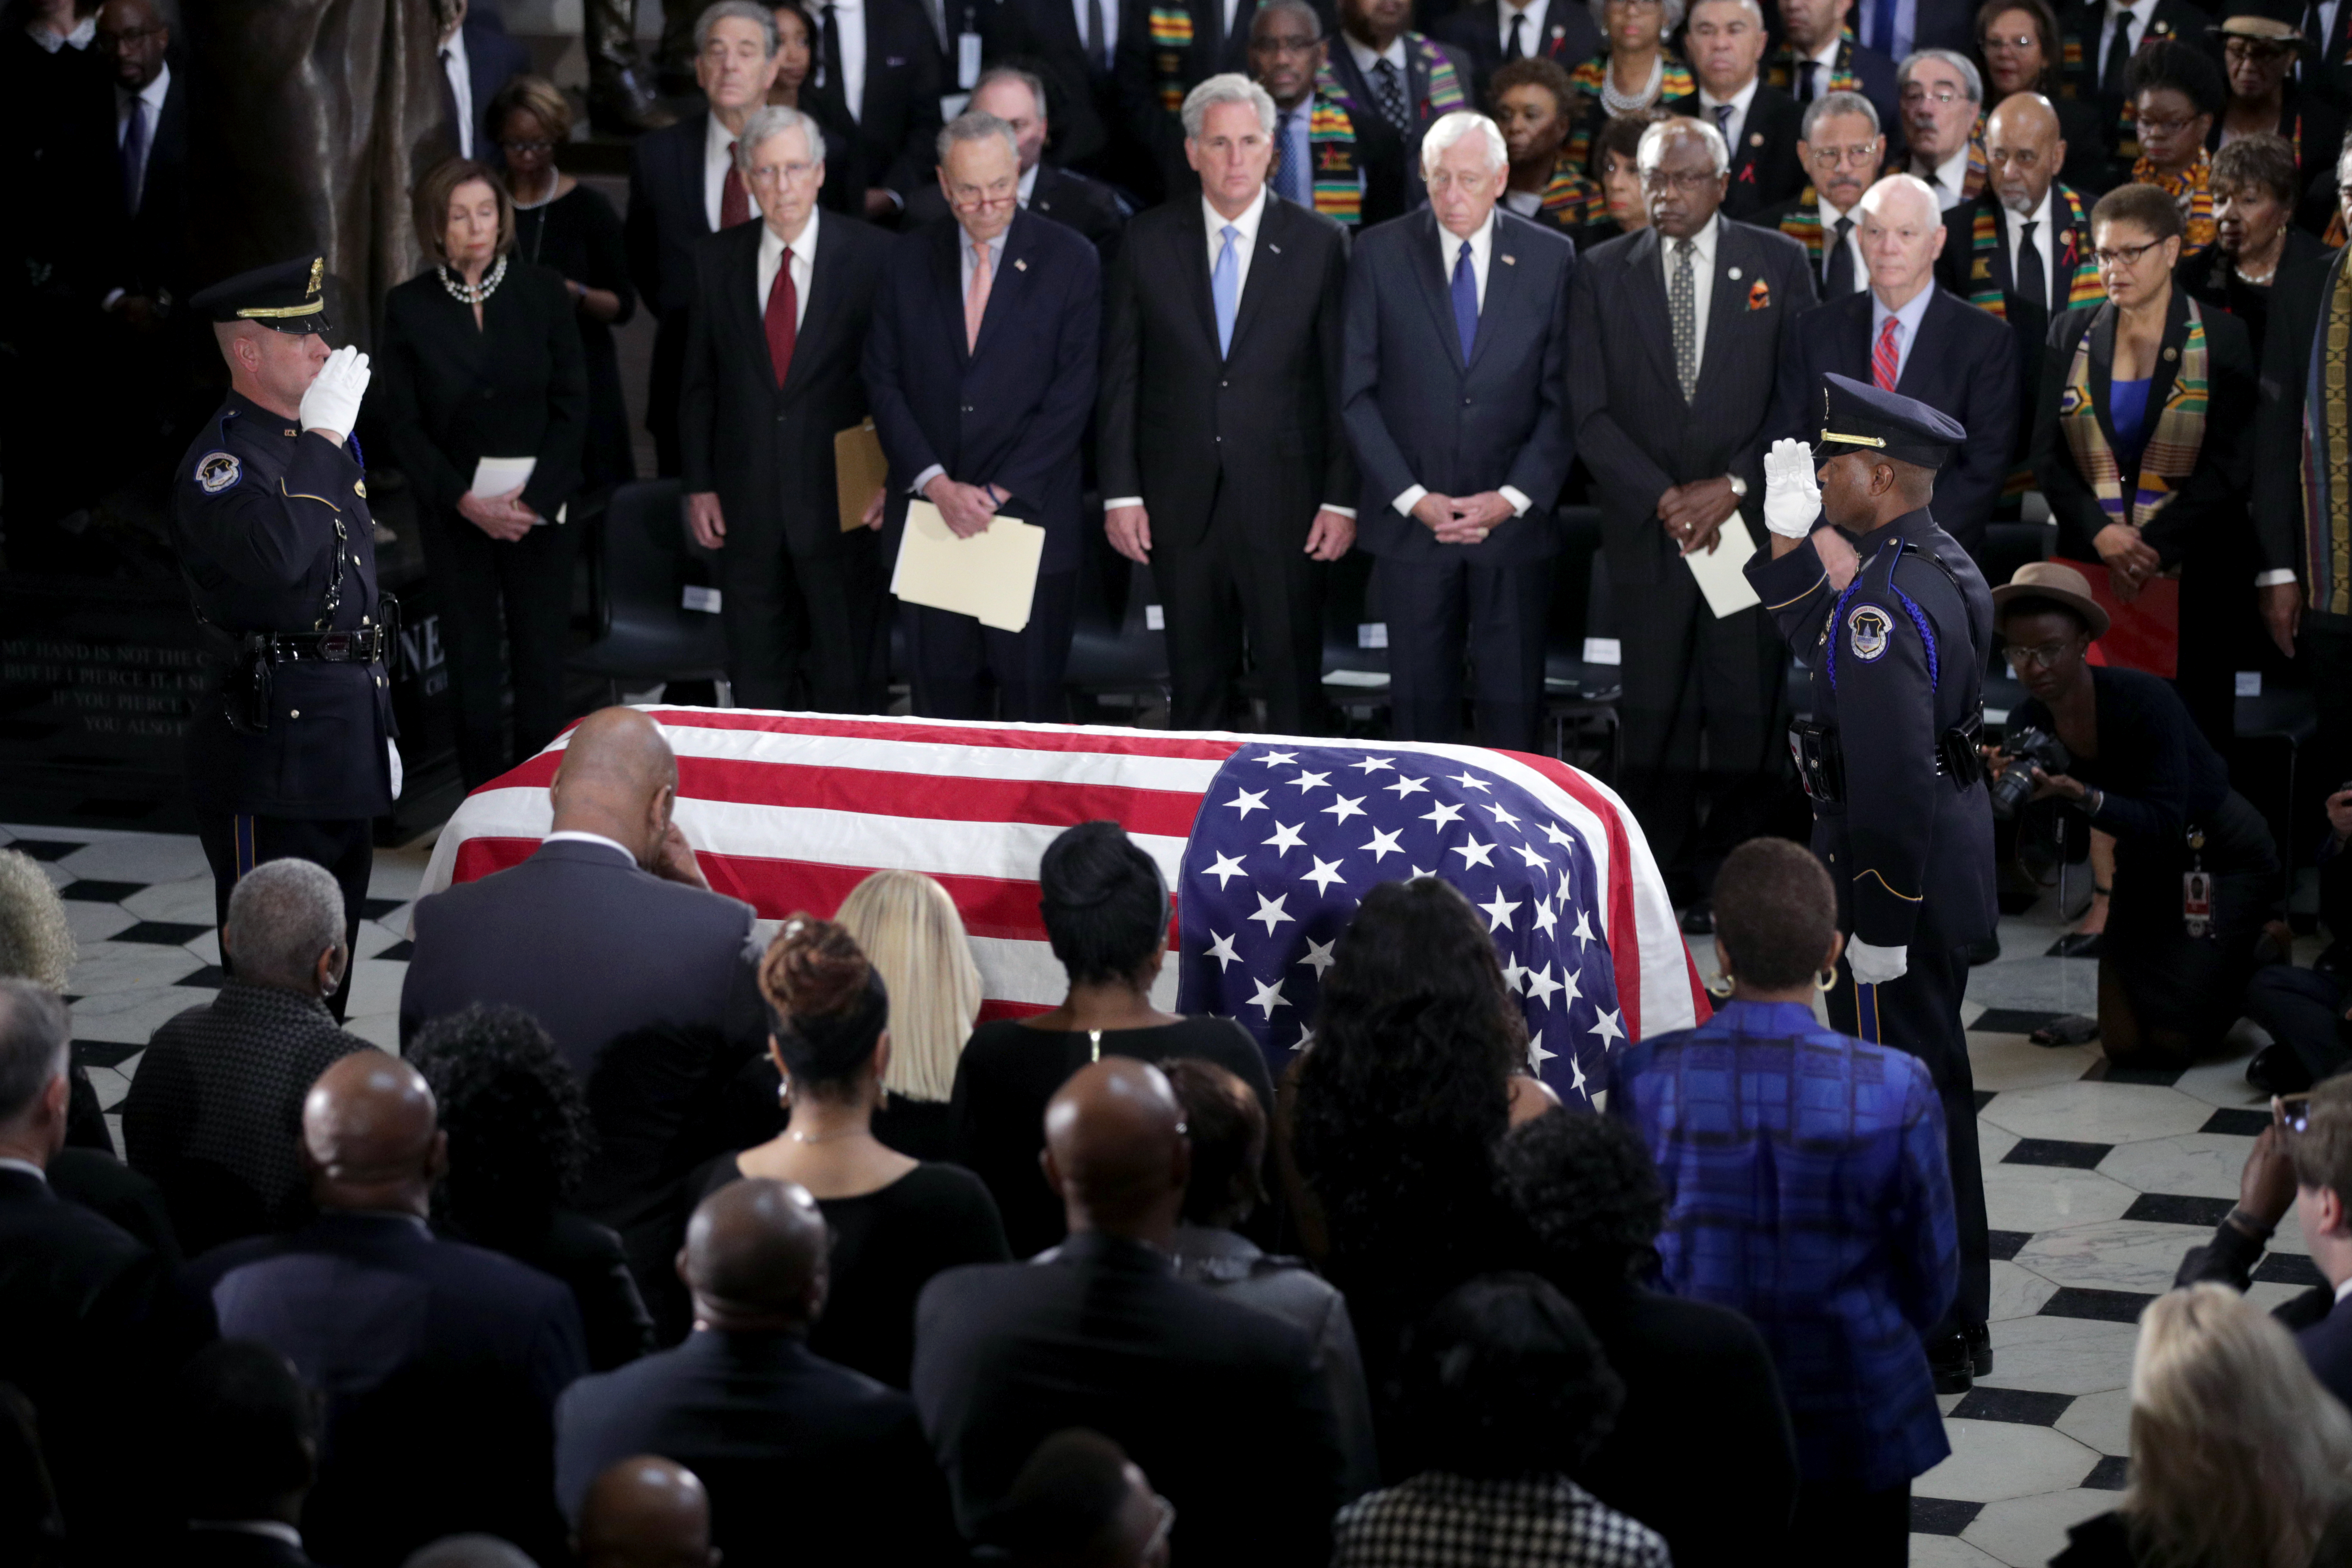 "*** POOL ***WASHINGTON, DC - OCTOBER 24: The flag-draped casket of U.S. Rep. Elijah Cummings (D-MD) is seen as the late congressman lies in state during a memorial service at the Statuary Hall of the U.S. Capitol October 24, 2019 in Washington, DC. Rep. Cummings passed away on October 17, 2019 at the age of 68 from ""complications concerning longstanding health challenges."" (Photo by Alex Wong/Getty Images)"